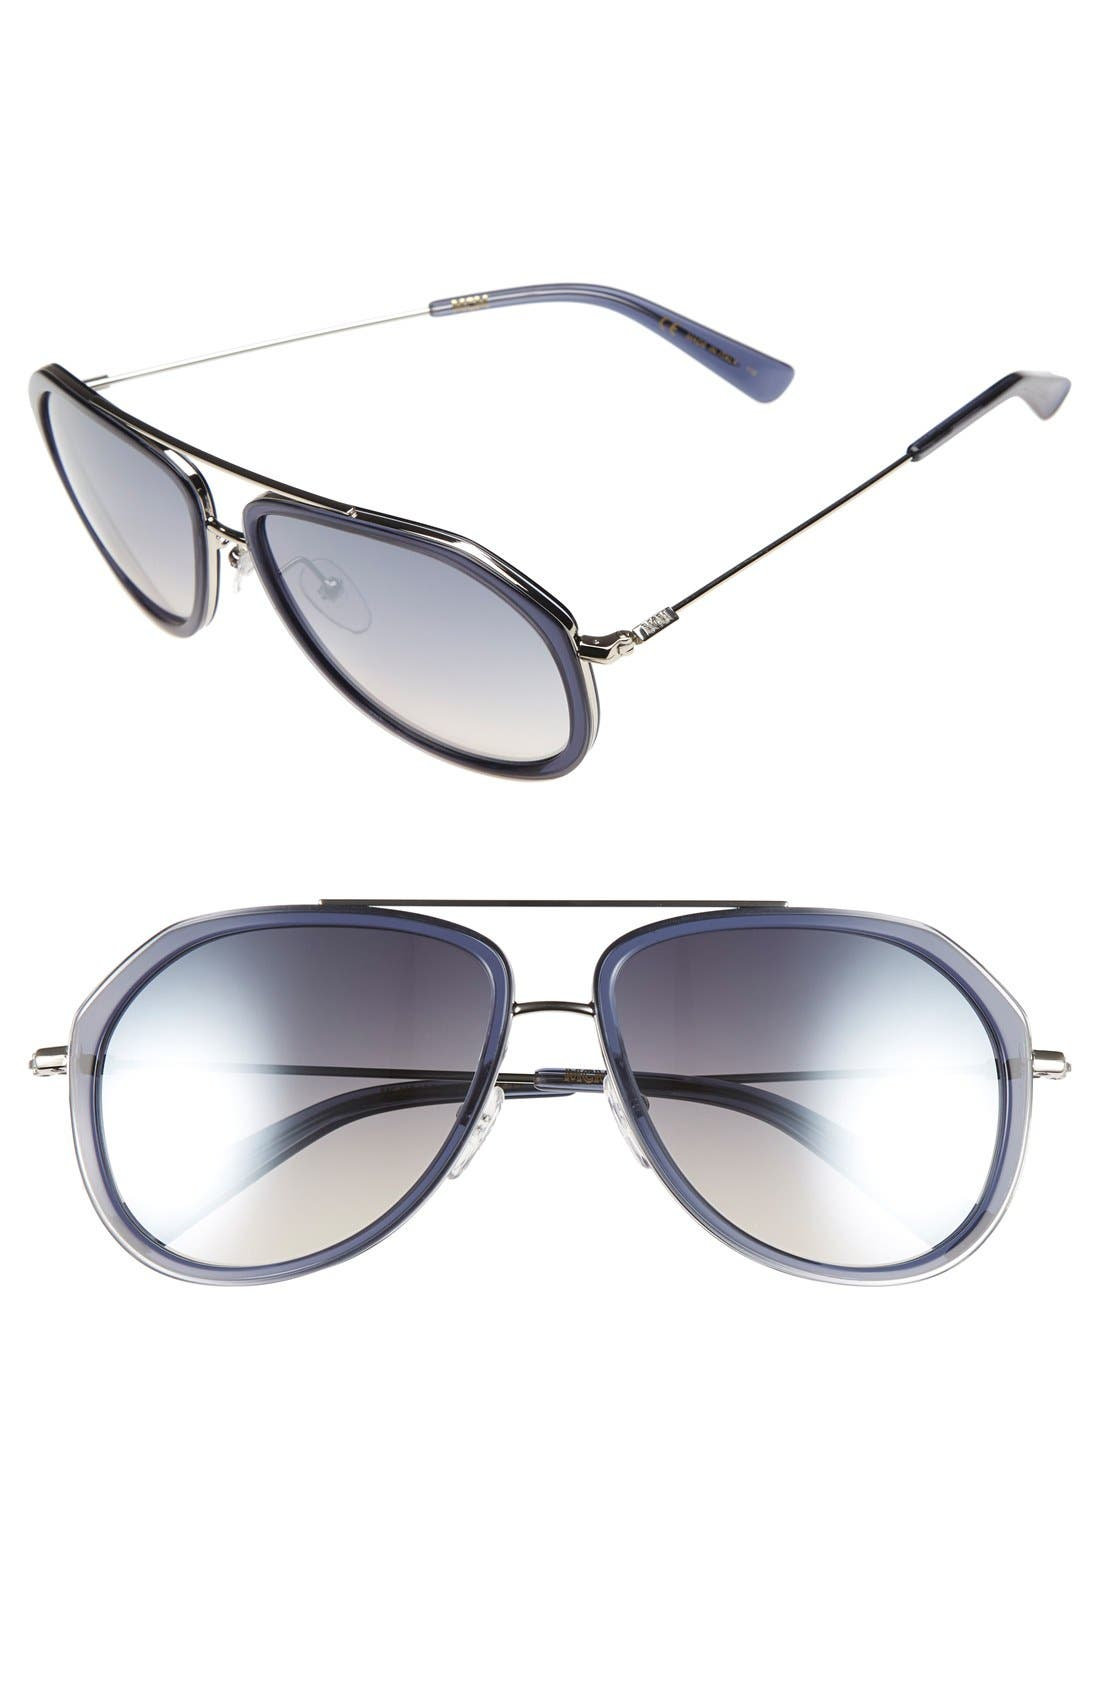 MCM 58mm Aviator Sunglasses